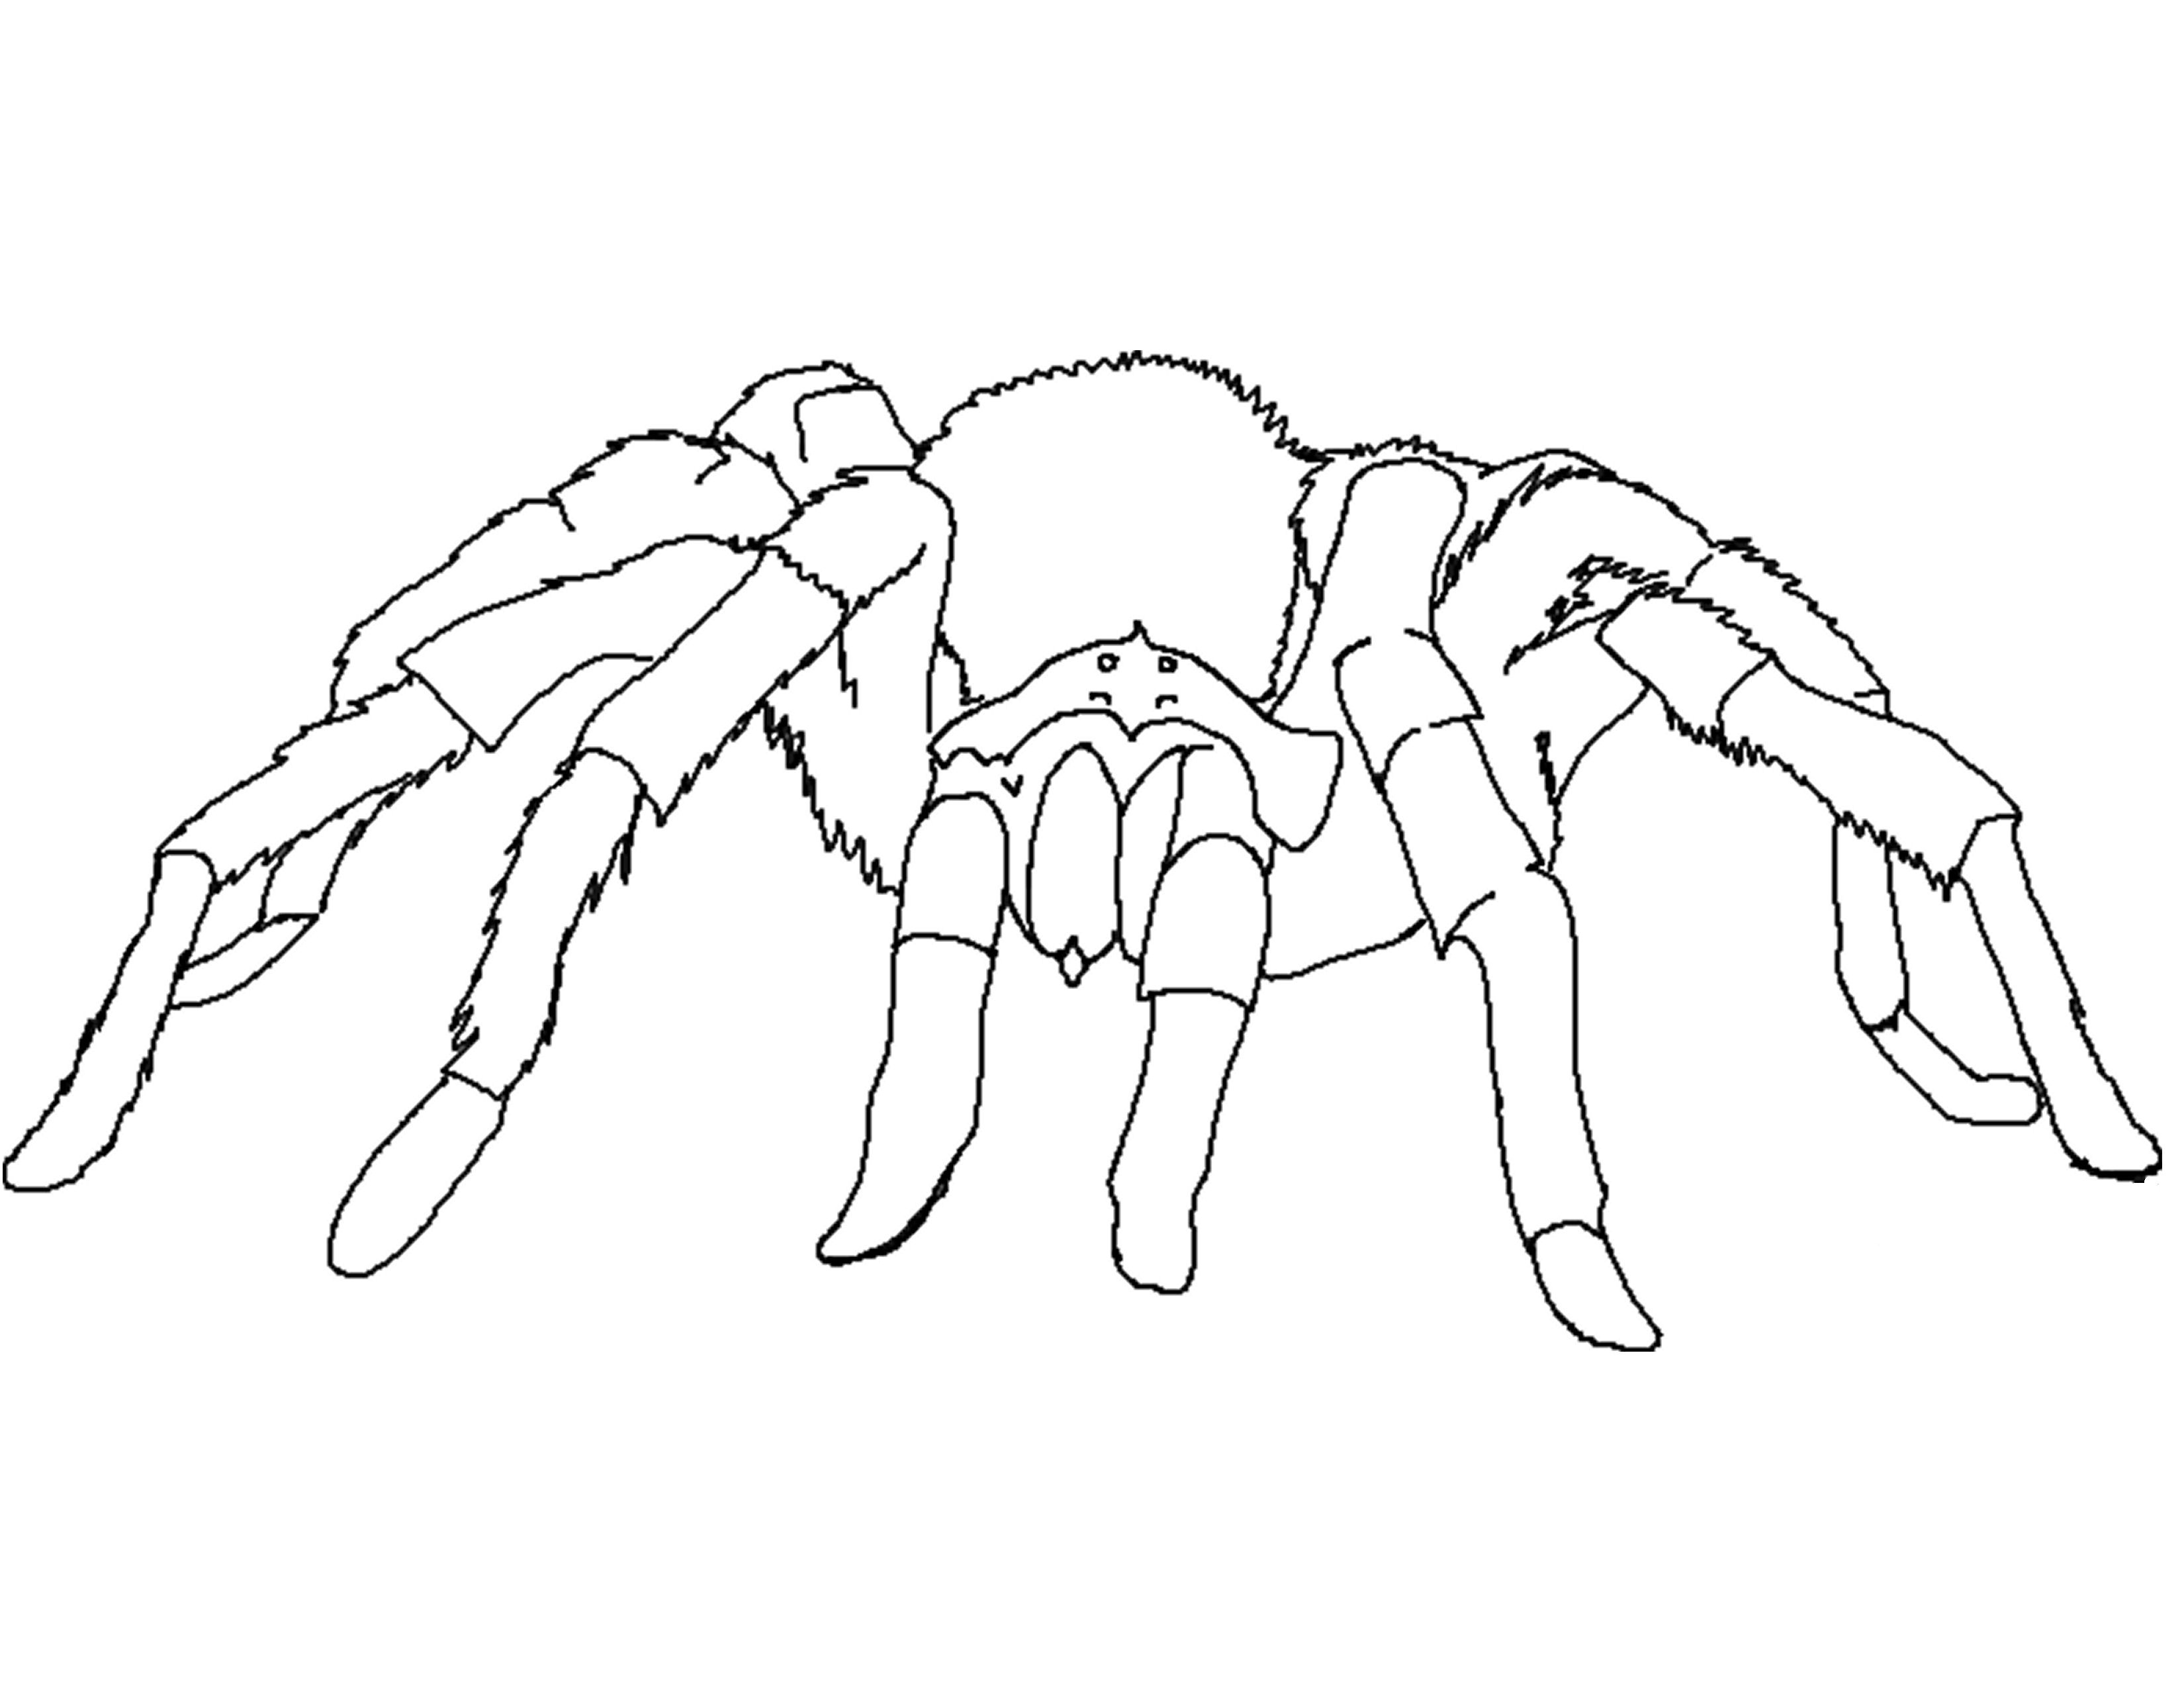 3300x2550 Spider Coloring Pages 2 Drawings Spiders Colouring Pages